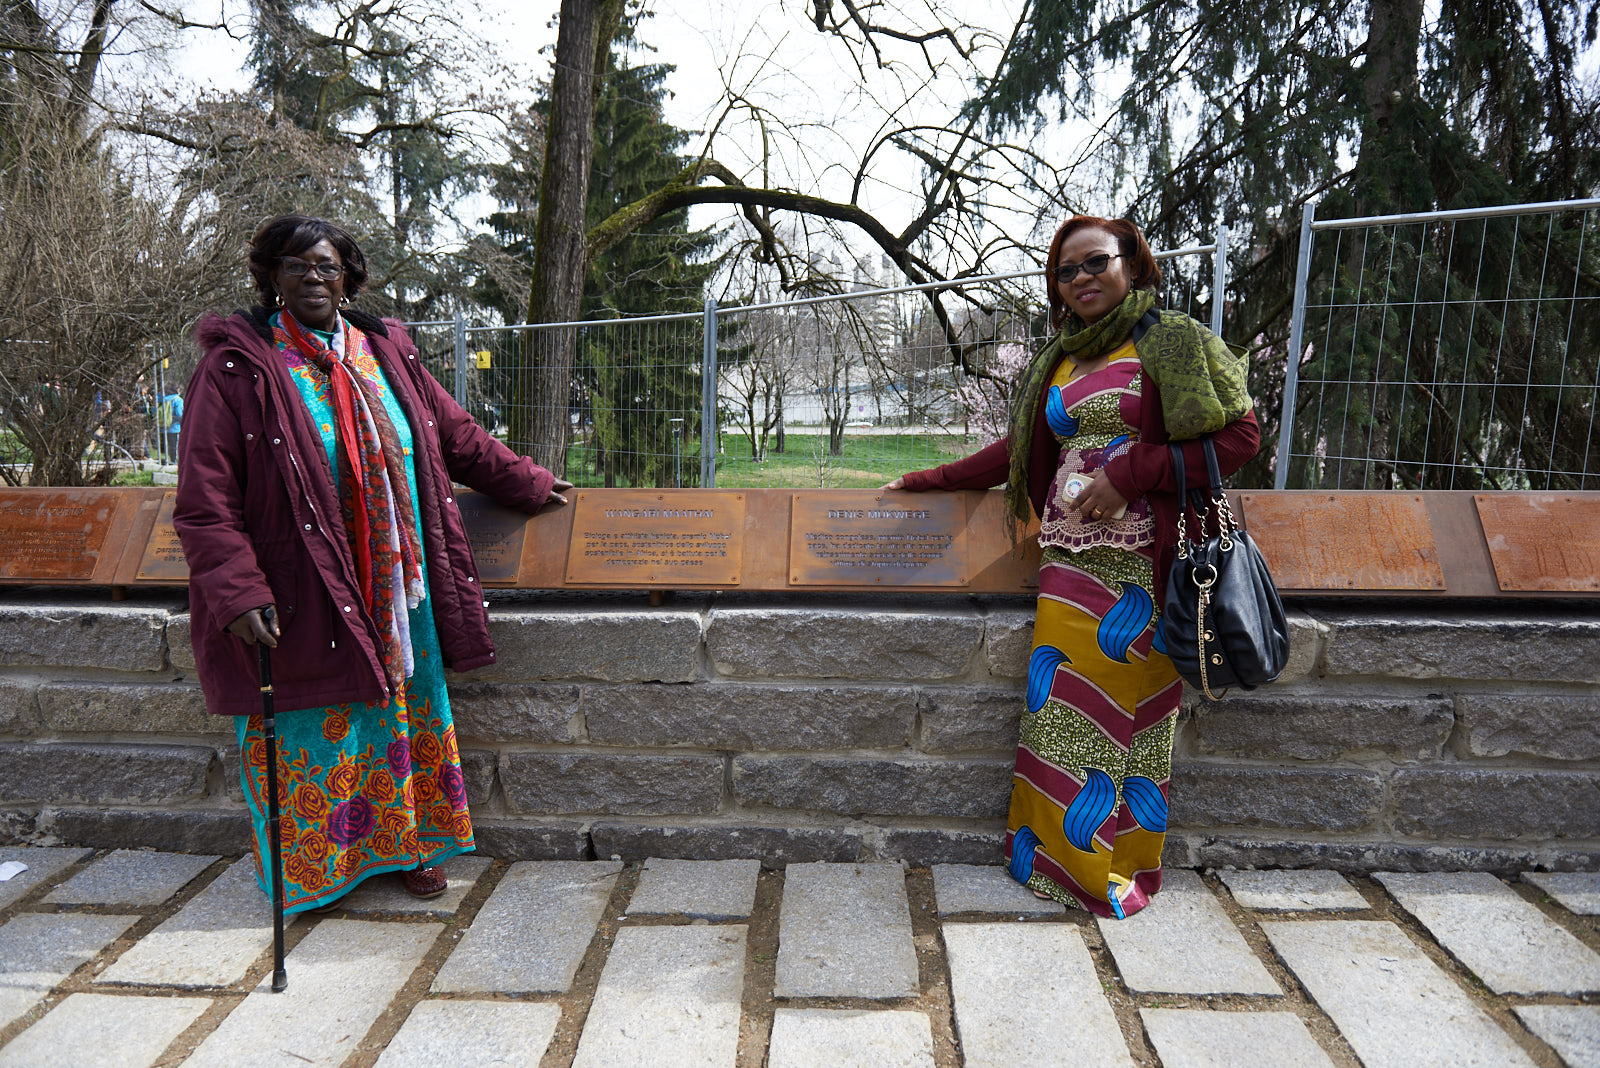 With the plaques for Maathai and Mukwege